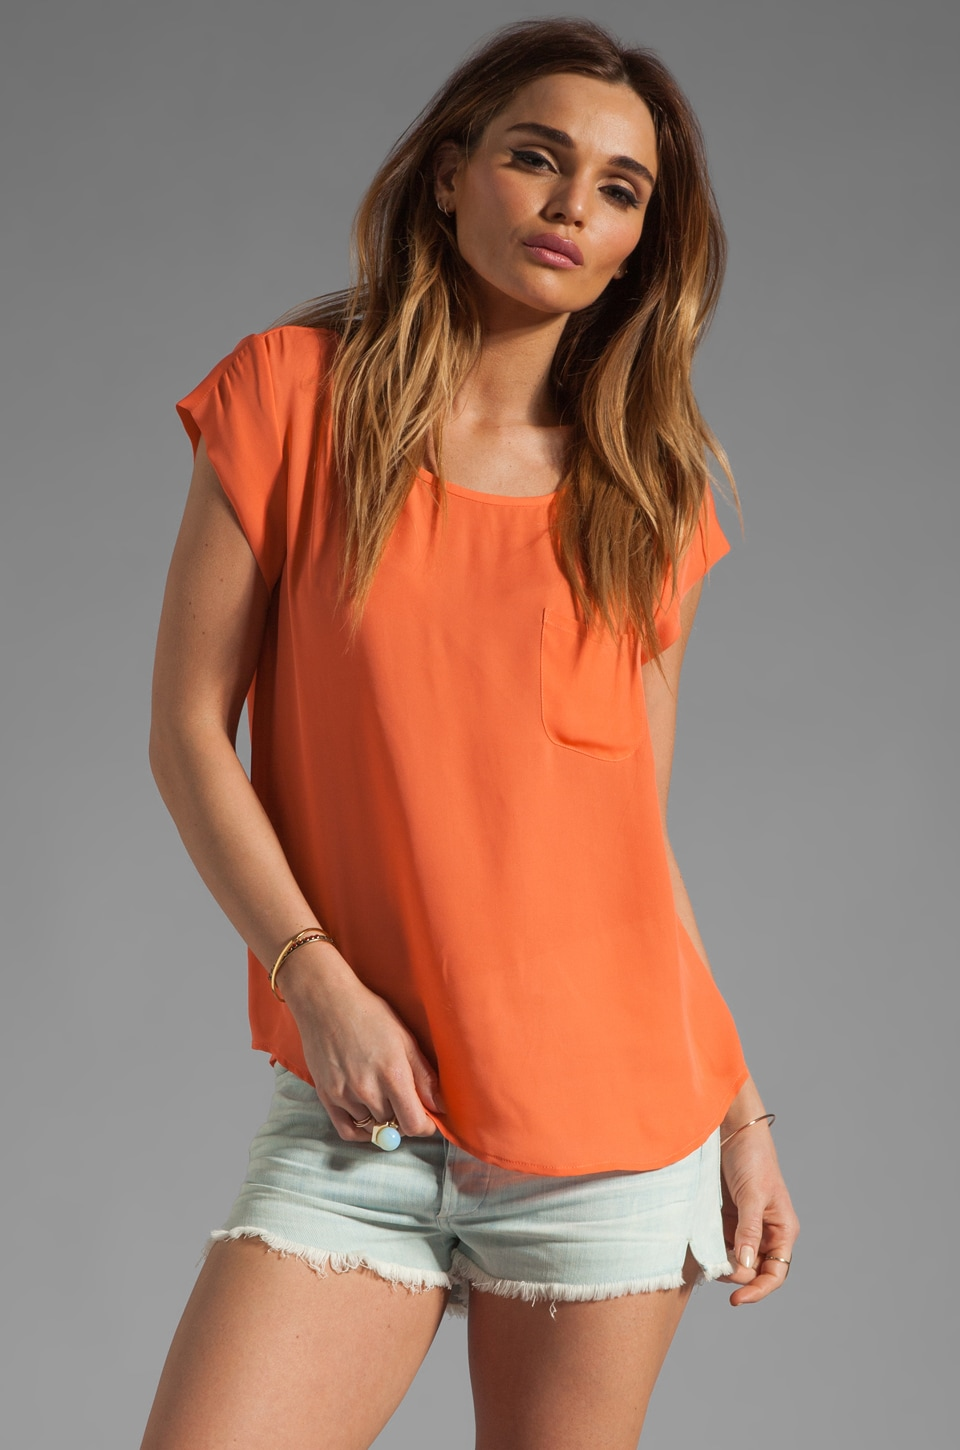 Joie Rancher Silk Top in Hot Coral